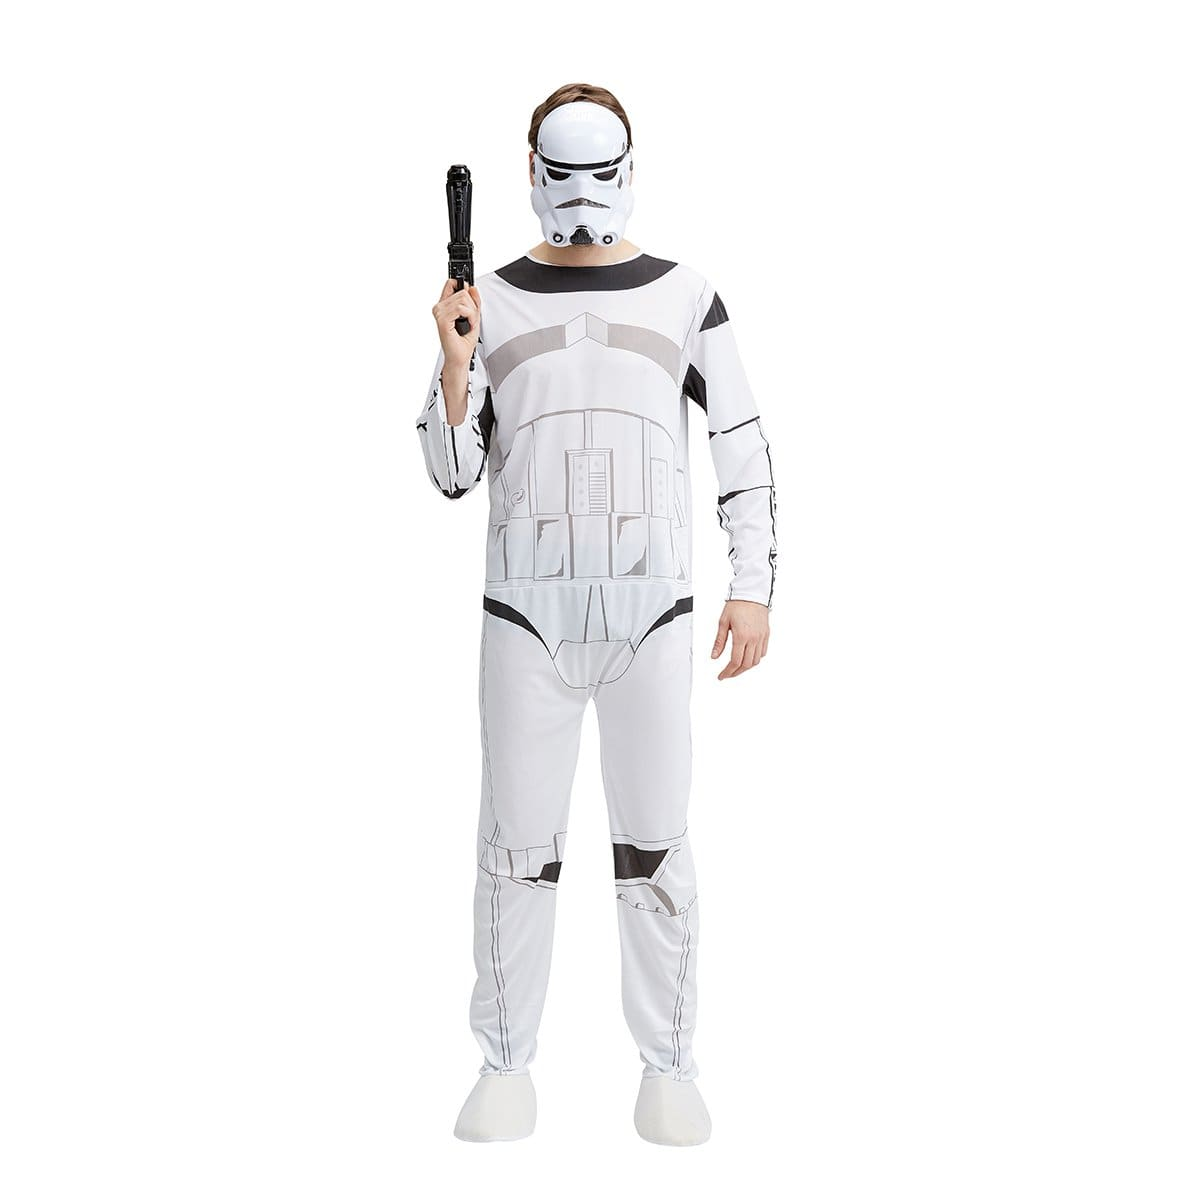 COSTUME GROUND FORCE SOLIDER MENS - Christmas World